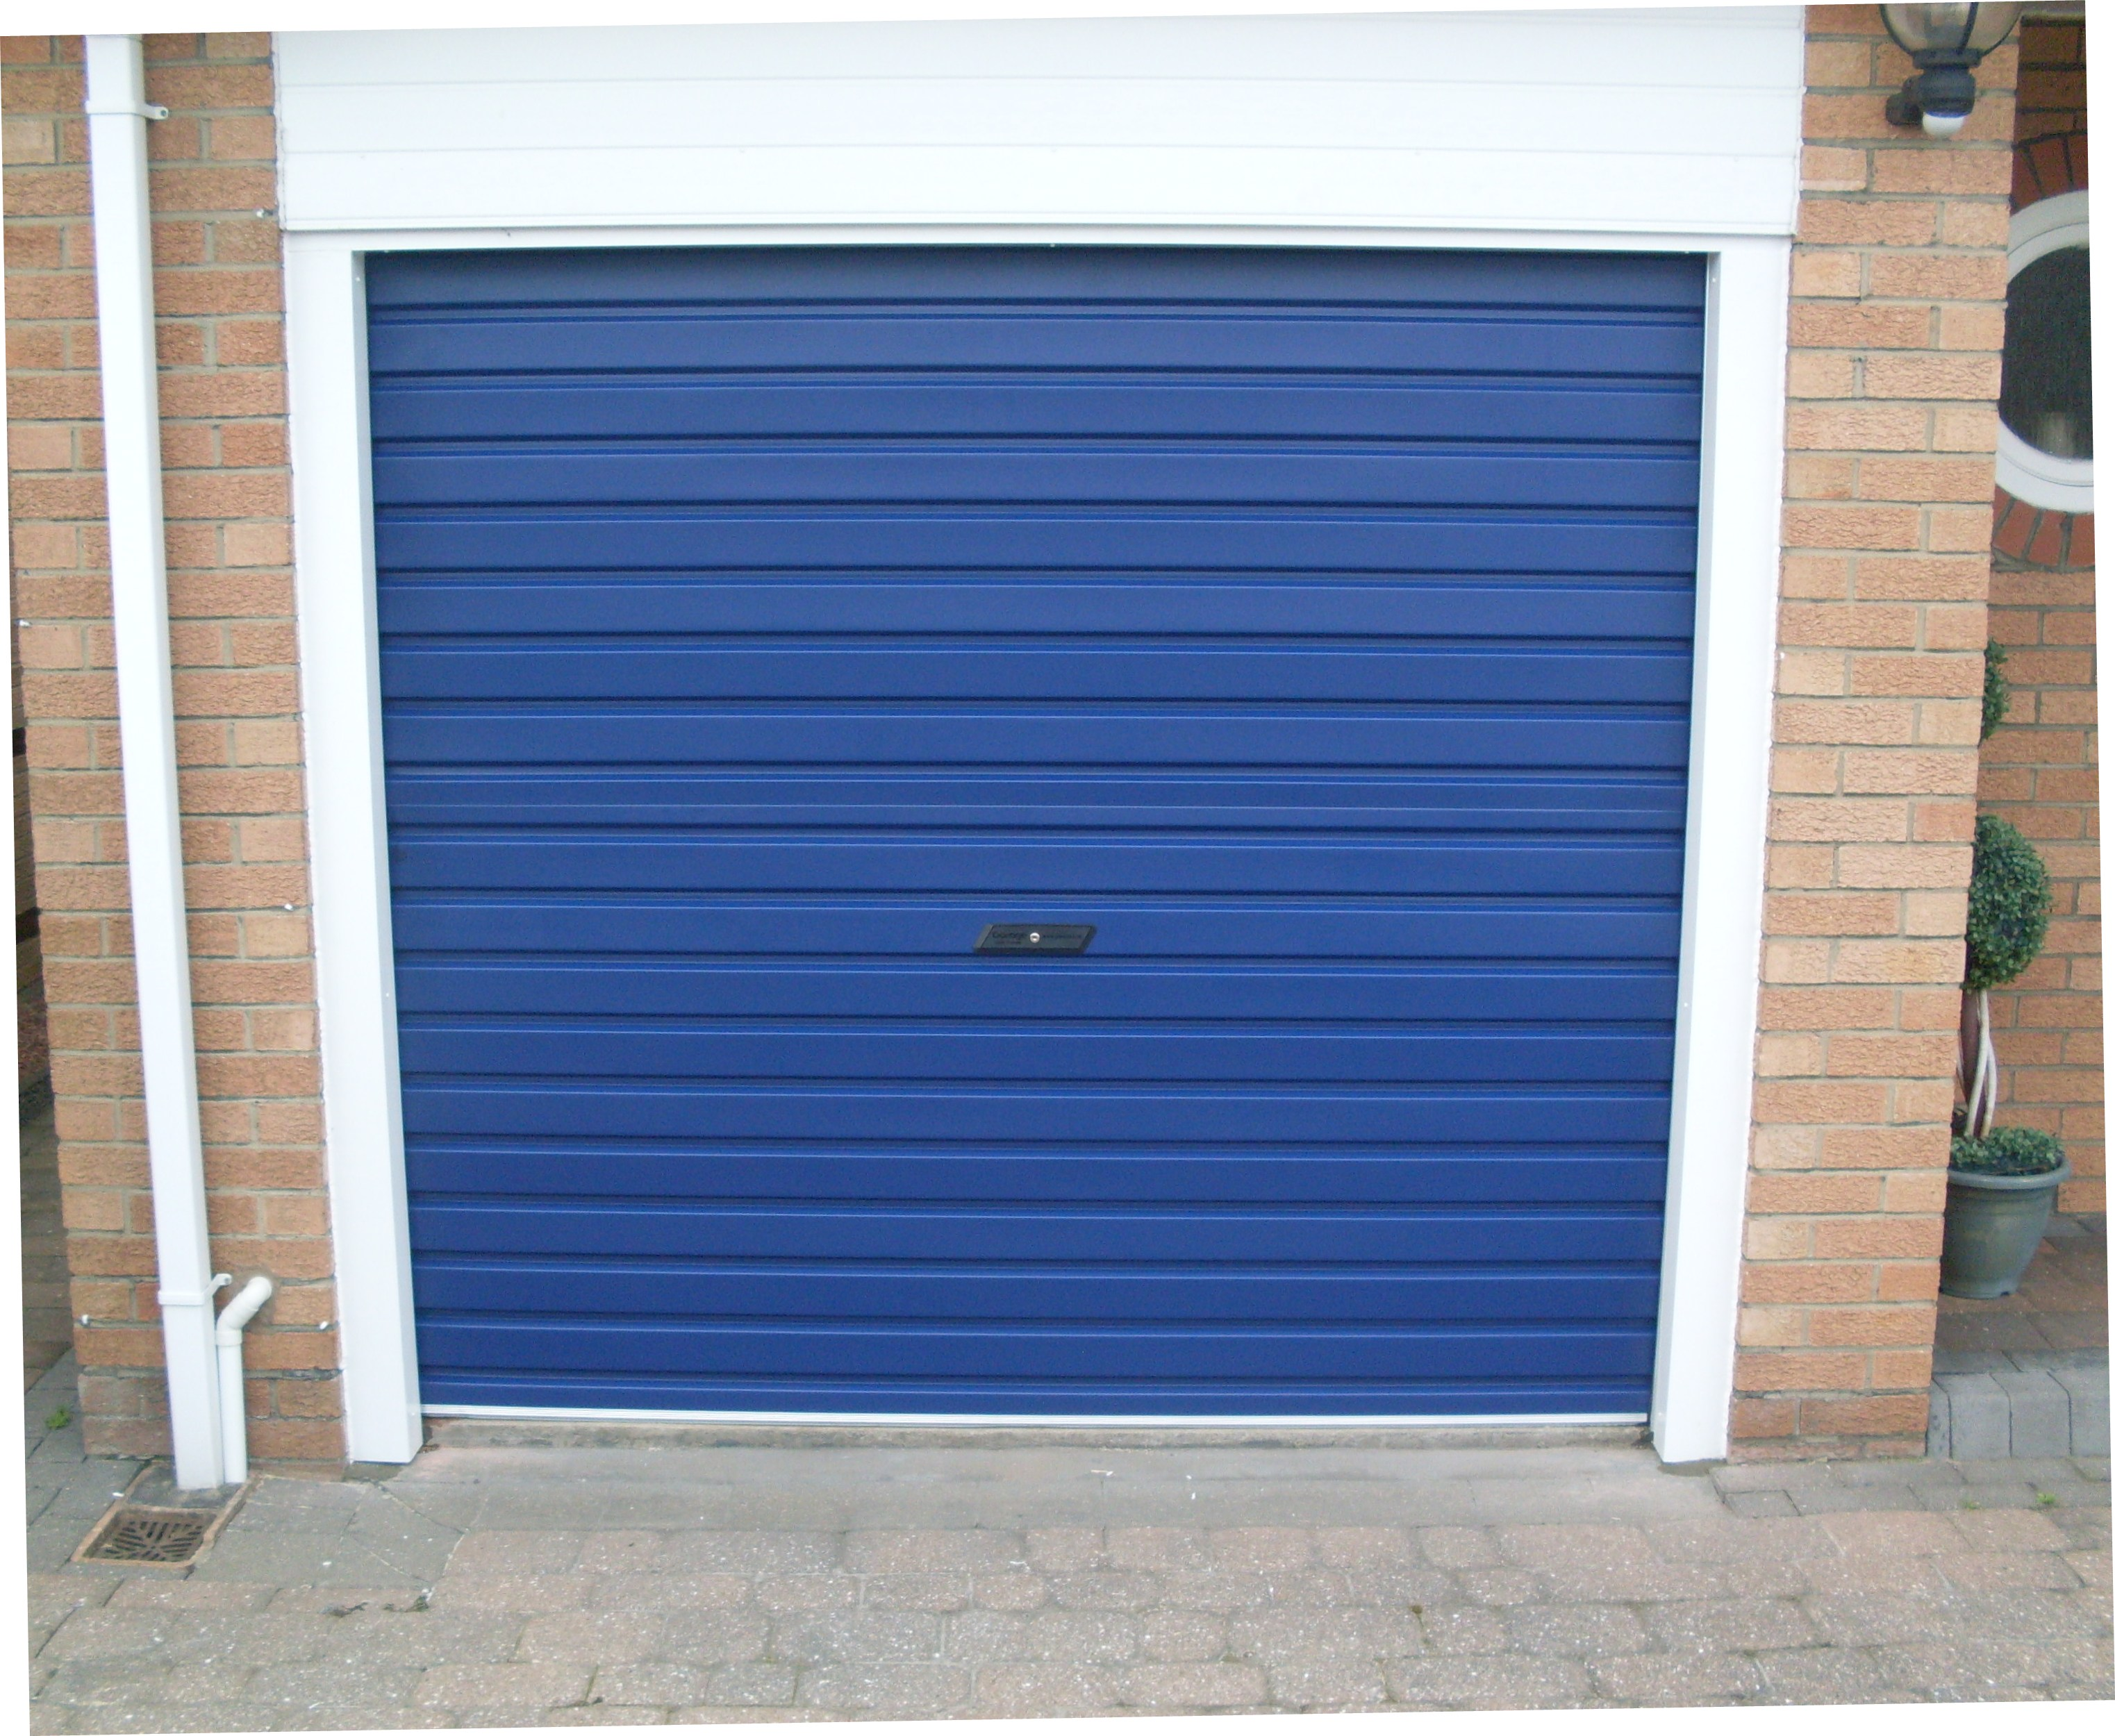 2500 #294886 Garage Doors Newcastle Newcastle Garage Doors Nortech Garage Doors  picture/photo Garages Doors 36393045